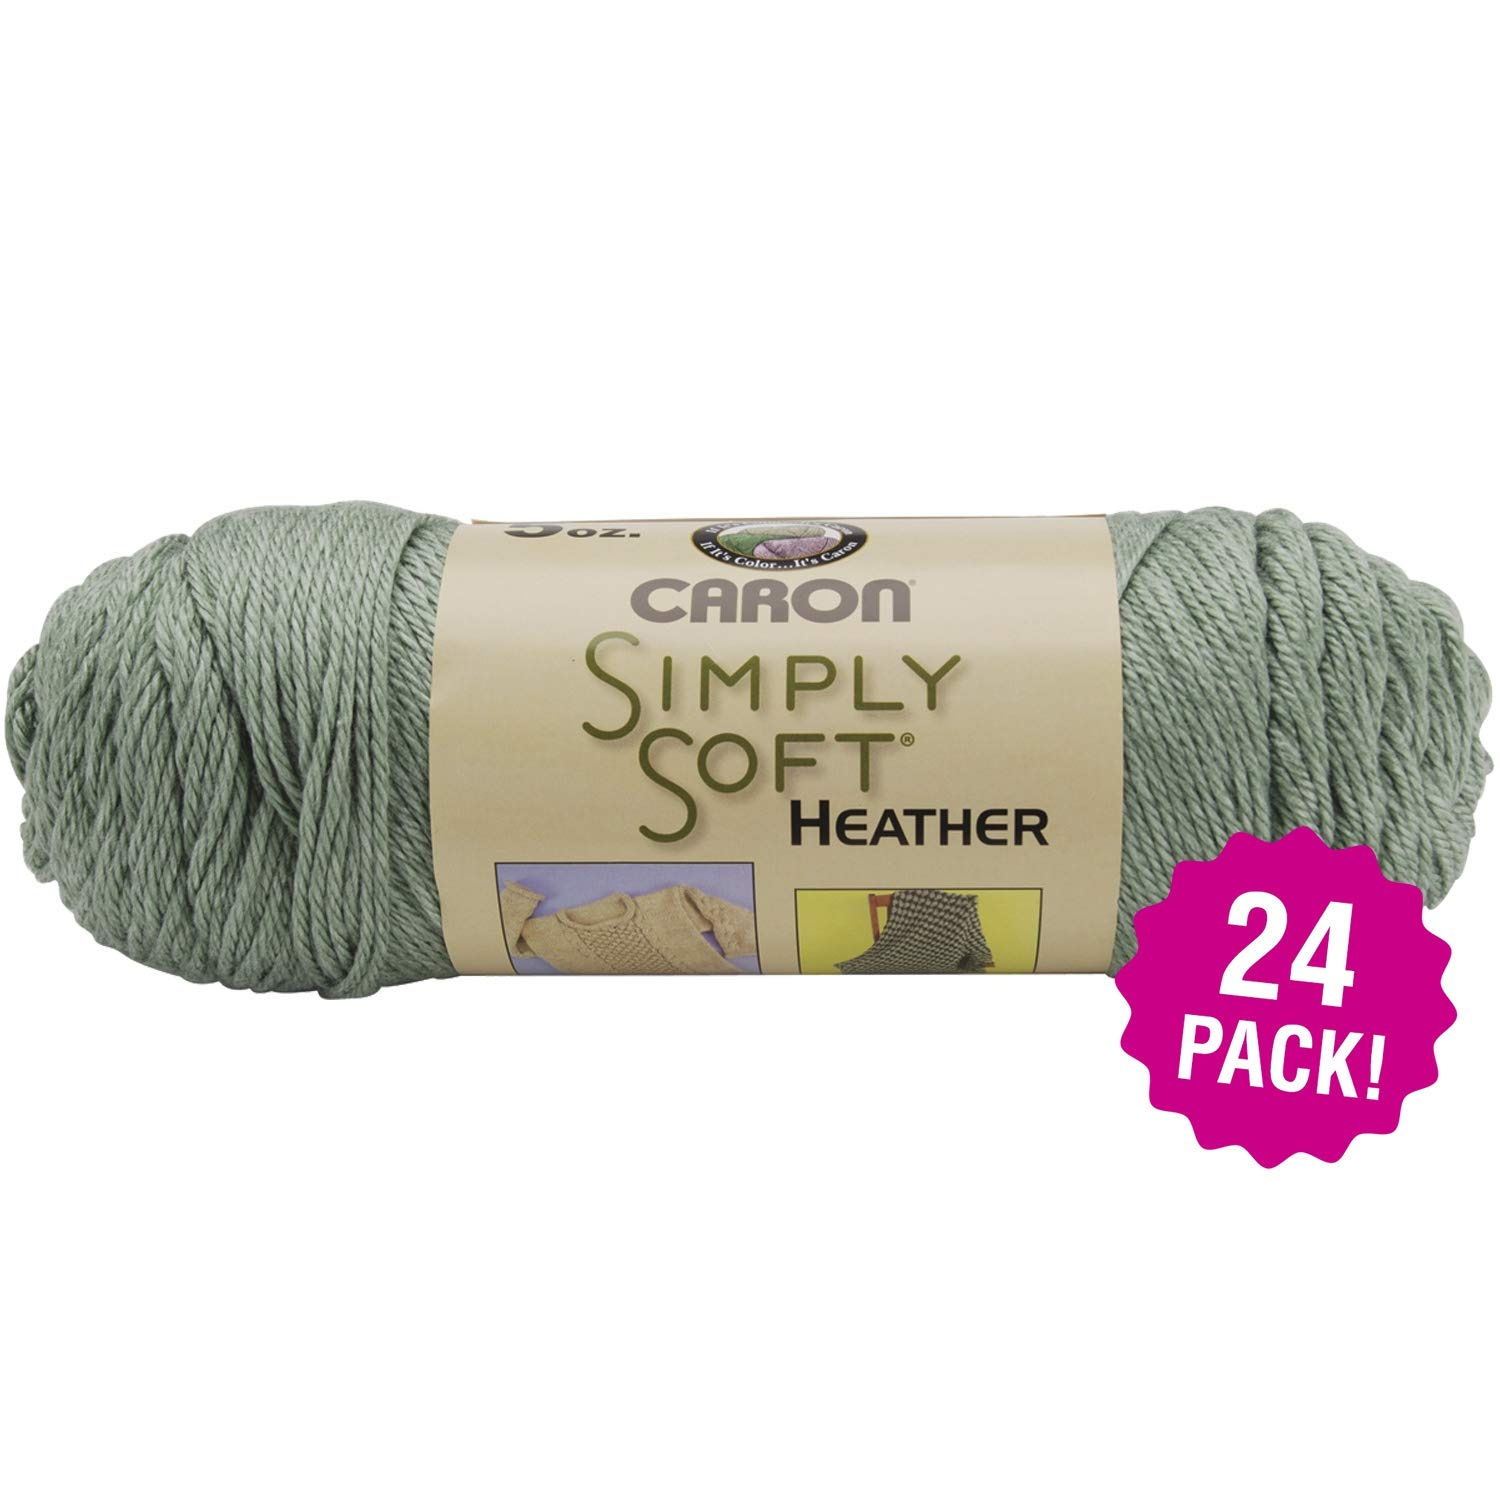 Caron 98075 Simply Soft Heather Yarn-Woodland, Multipack of 24, Wooland Pack